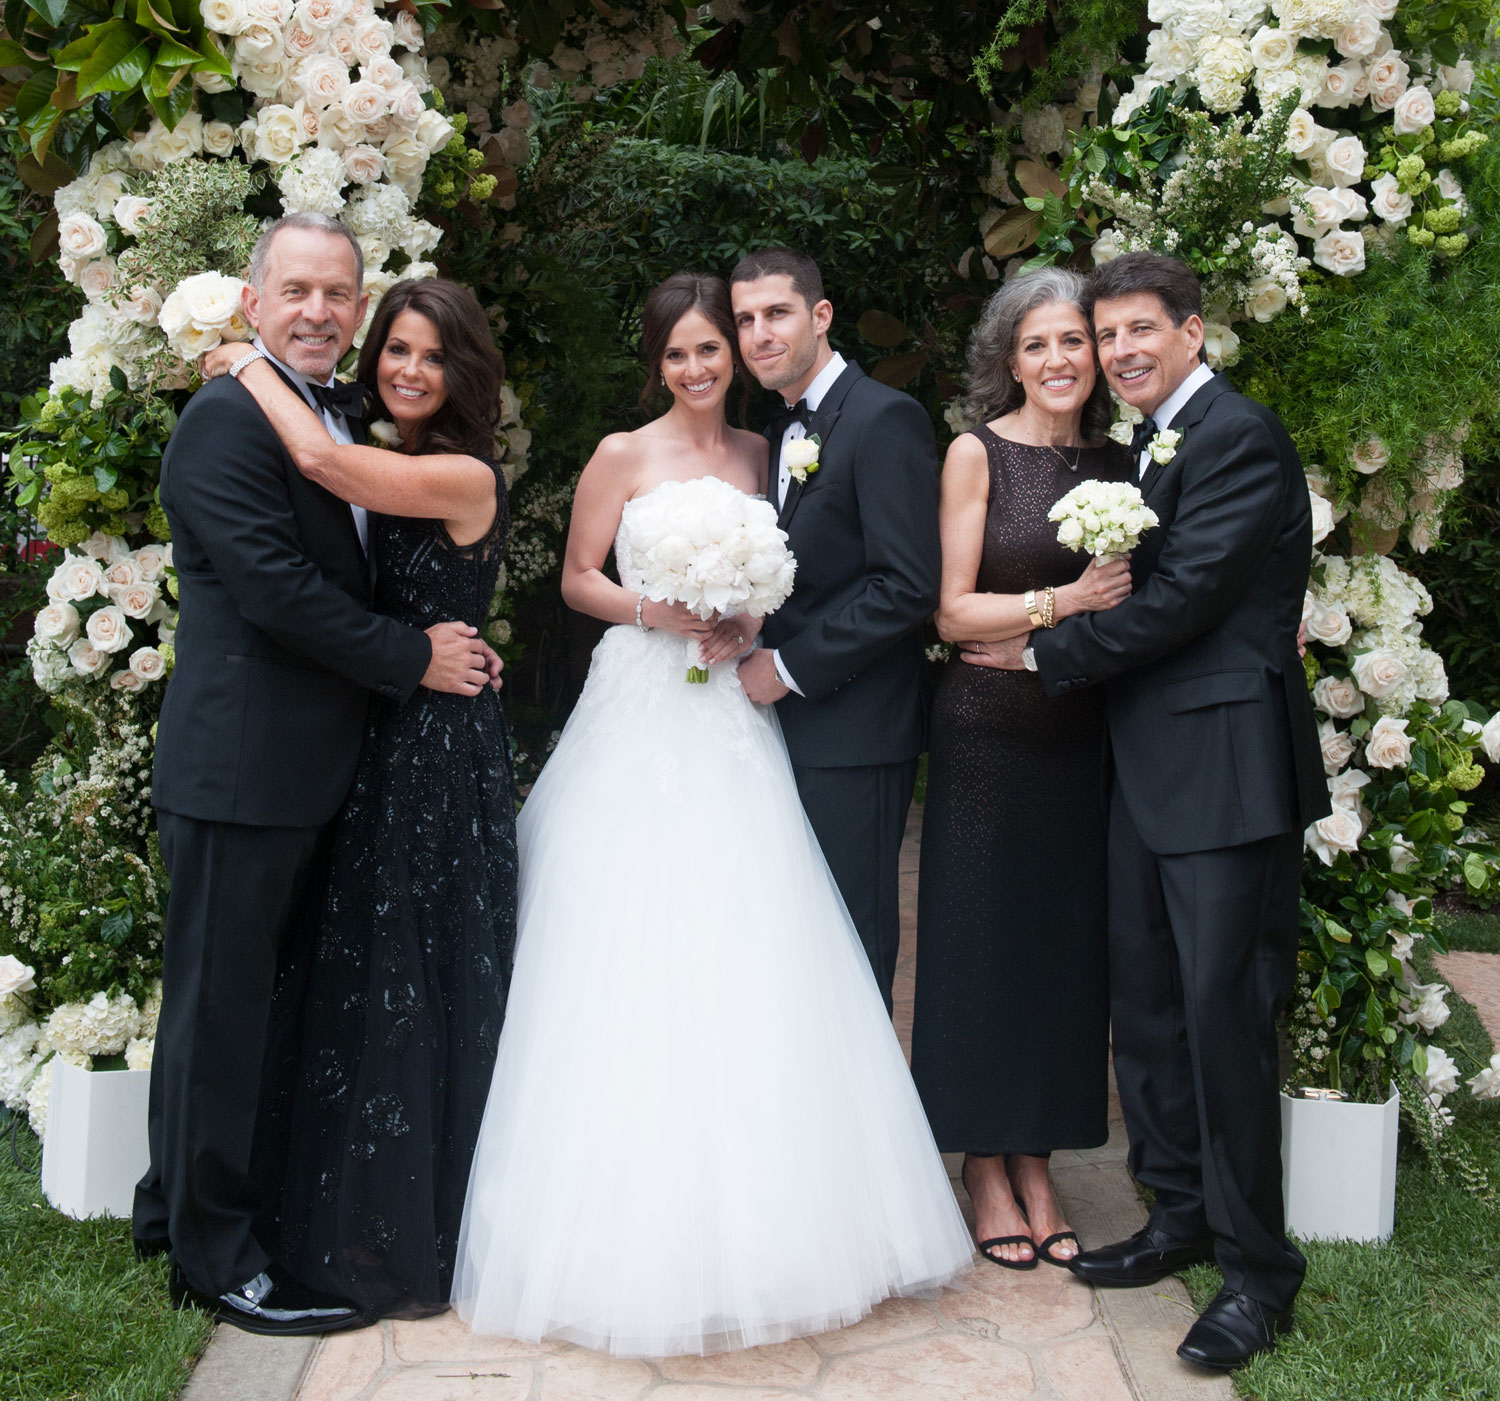 Wedding Gown For Parents: Tips For Introducing Your Parents And Future In-Laws